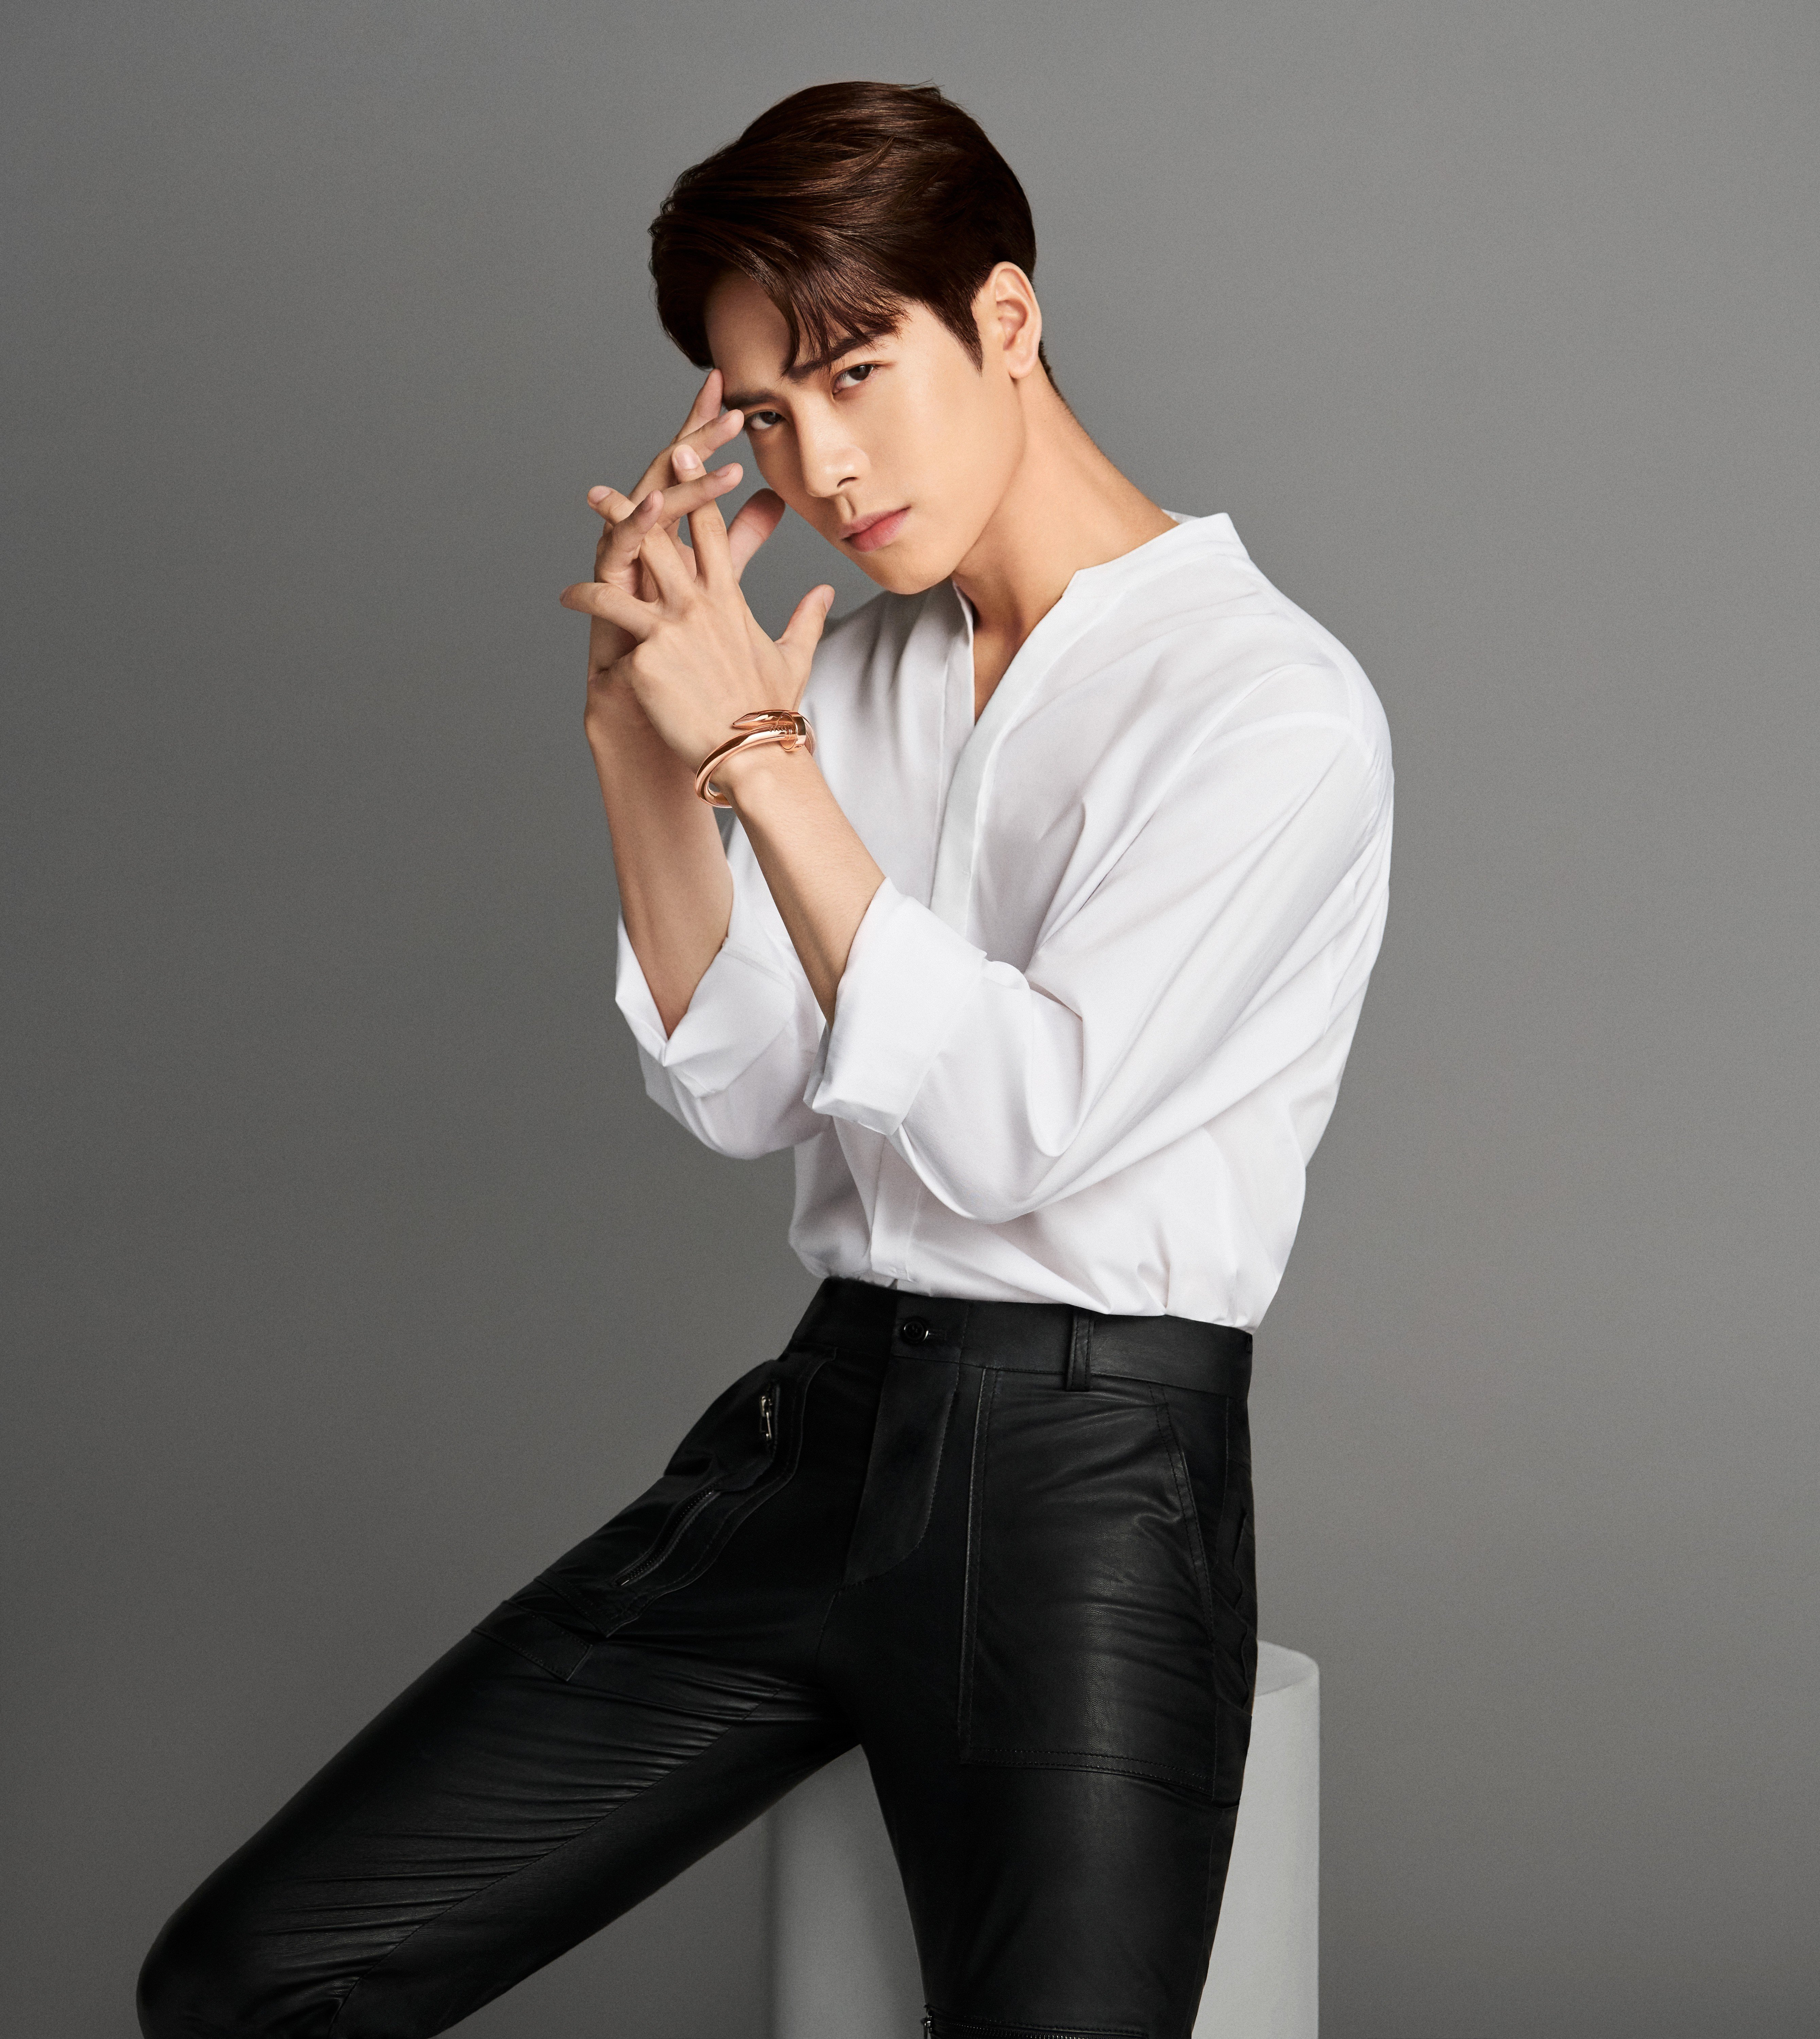 K Pop Star Jackson Wang From Boy Band Got7 Is The Fresh New Face Of Cartier South China Morning Post